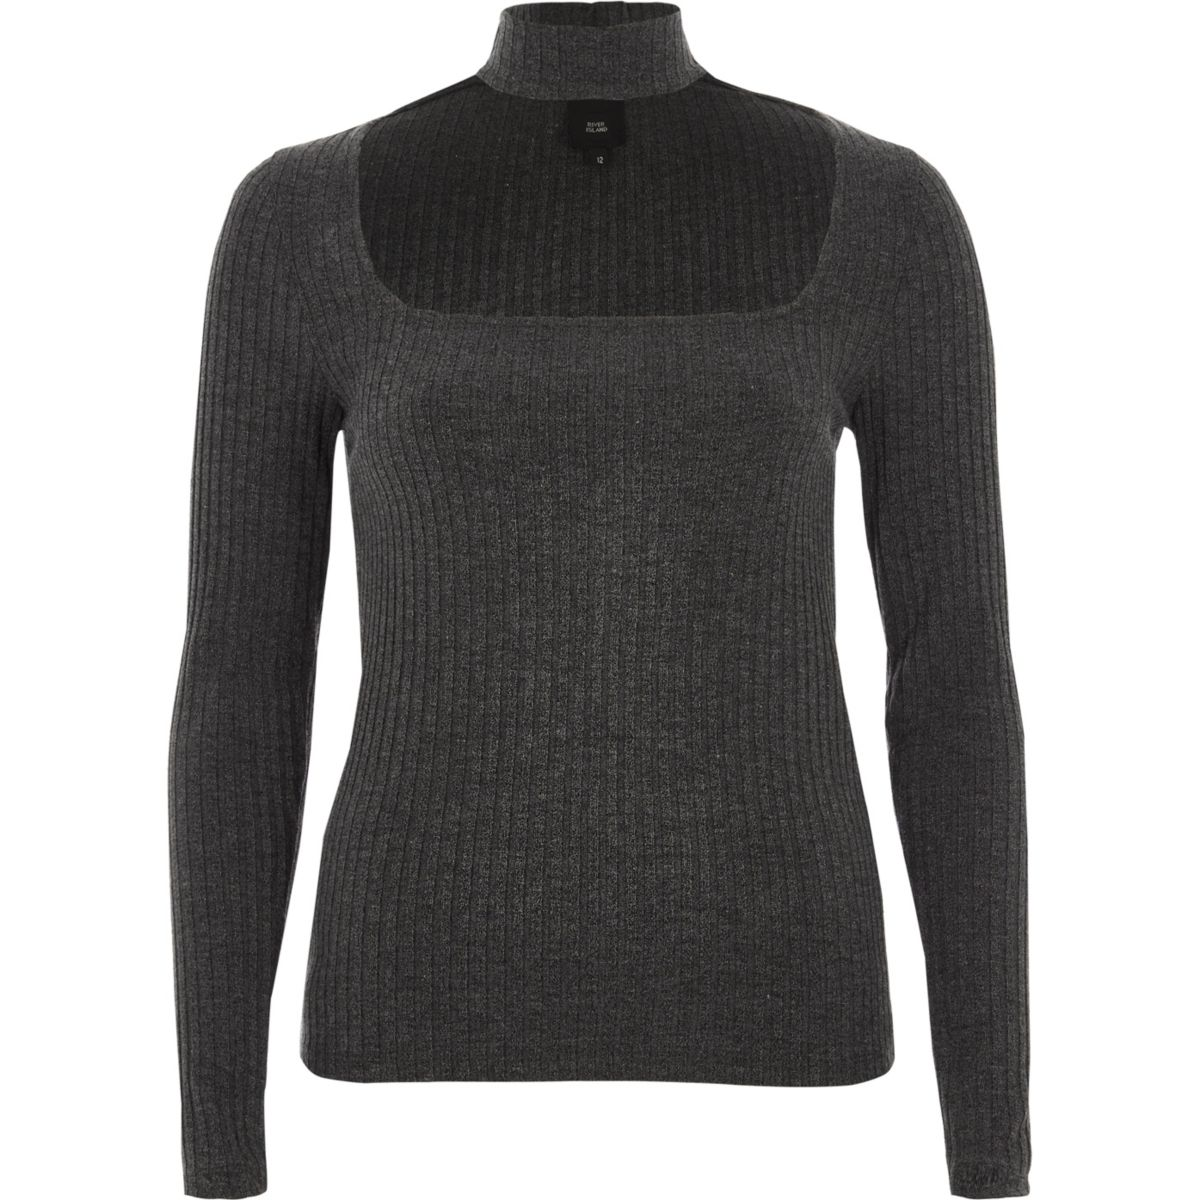 Dark grey rib long sleeve choker neck top